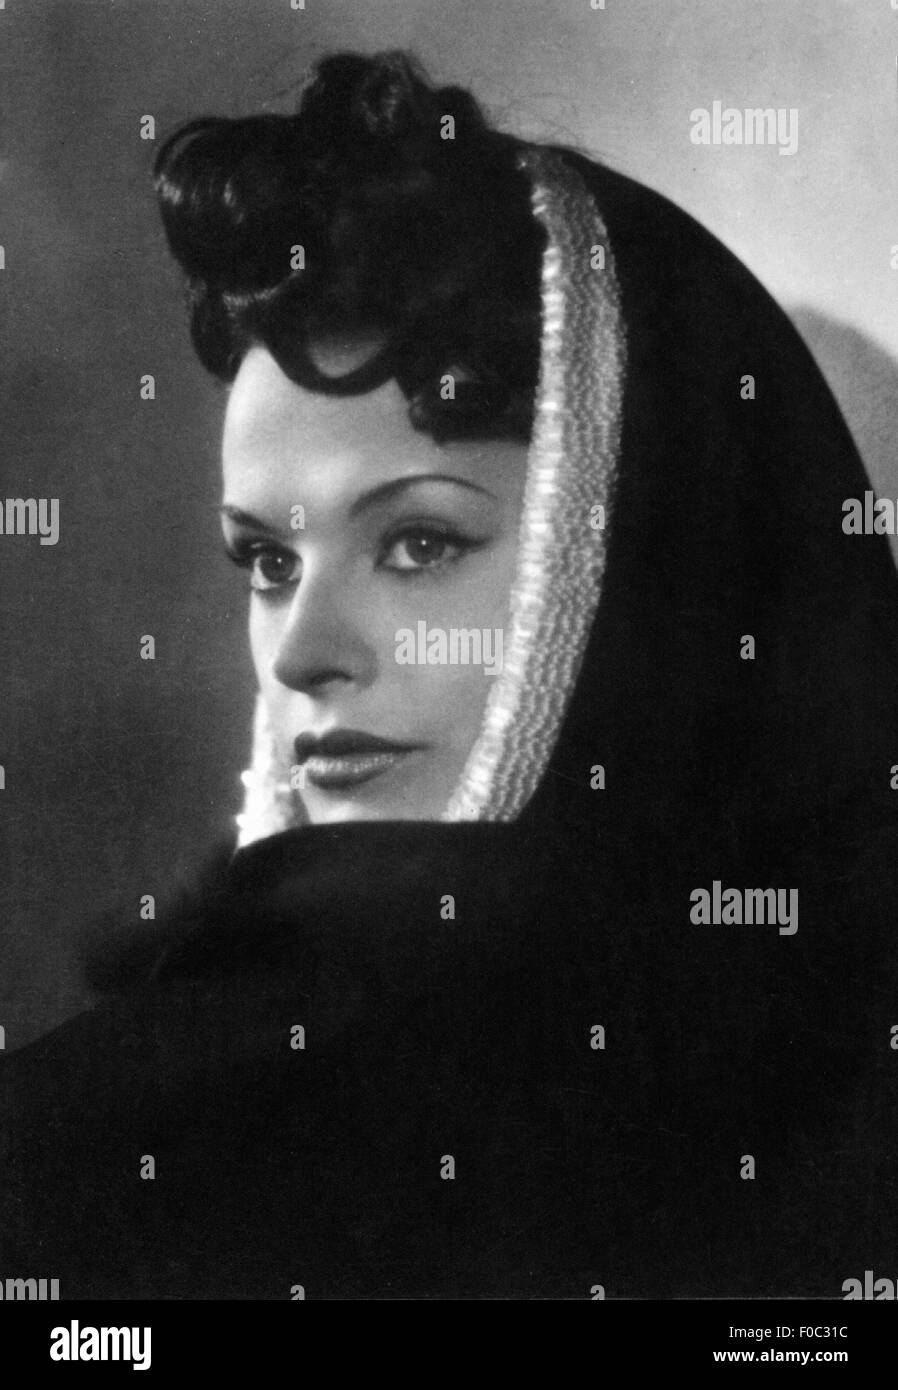 Hielscher, Margot, * 29.9.1919, German actress, portrait, 1940s, Additional-Rights-Clearances-NA - Stock Image